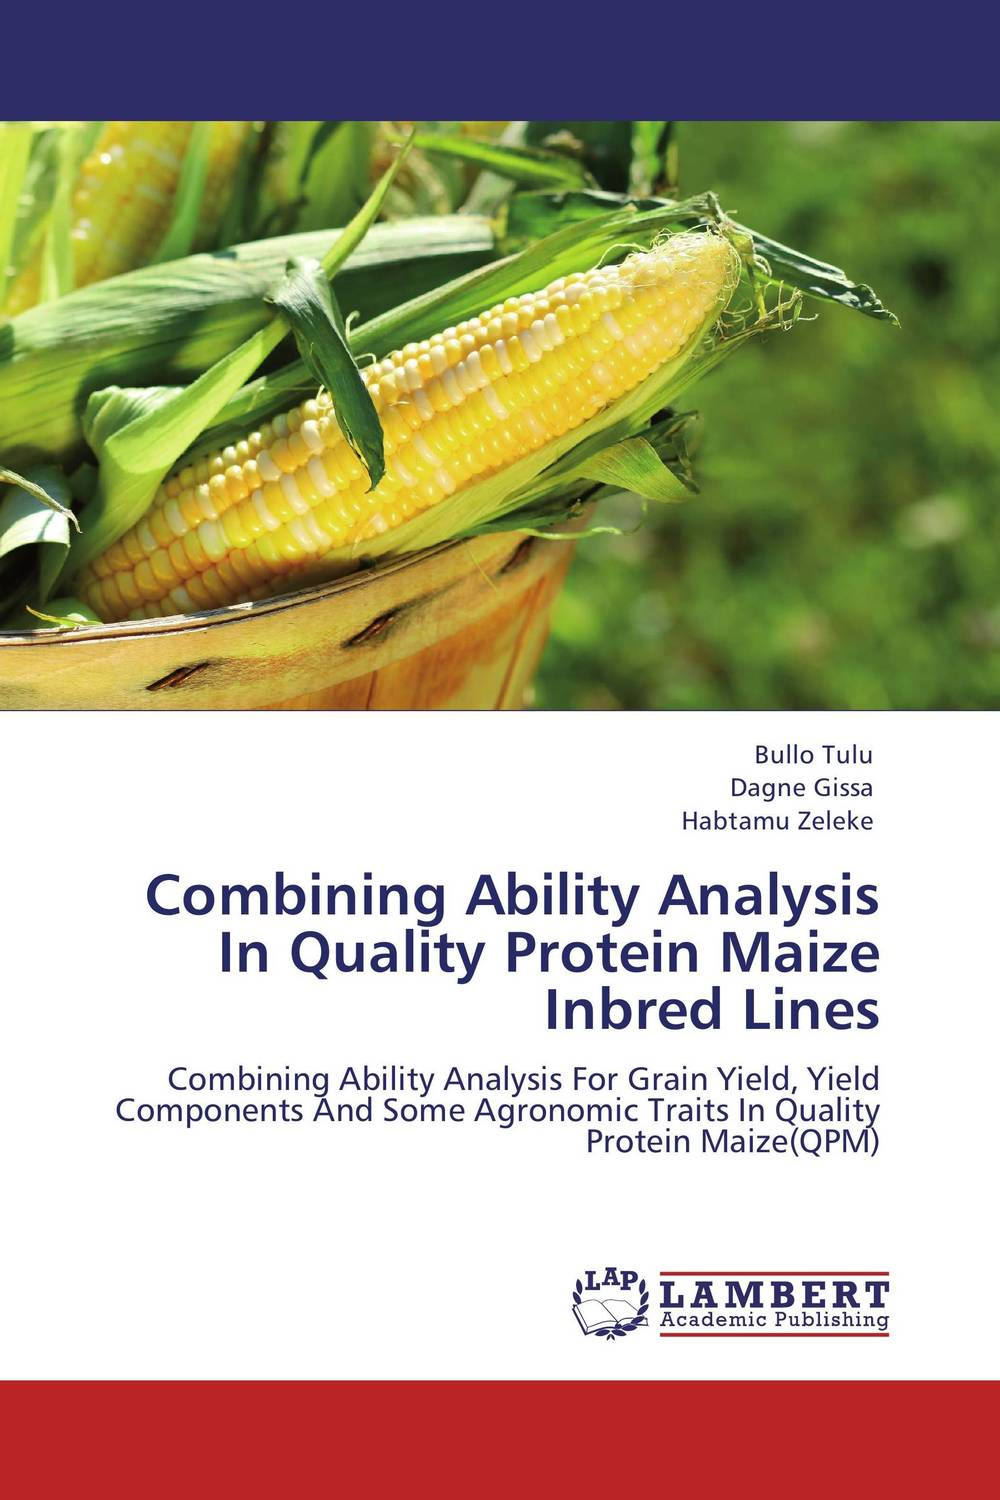 Combining Ability Analysis In Quality Protein Maize Inbred Lines heterosis and combining ability in brassica using diallel crosses